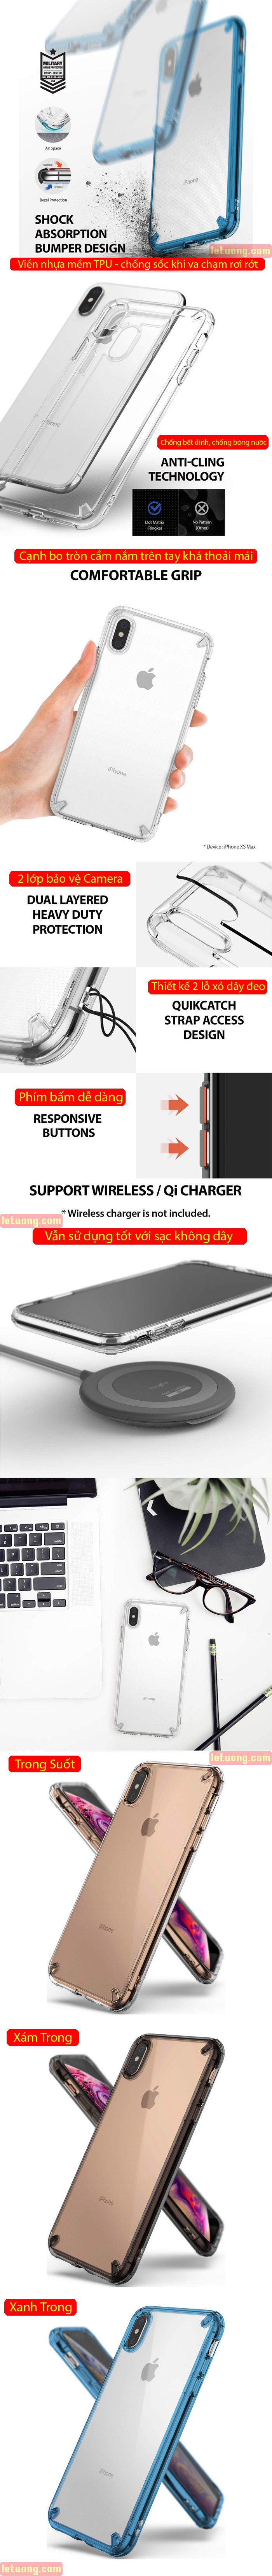 Ốp lưng iPhone Xs Max Ringke Fusion New 2018 trong suốt - chống sốc 1